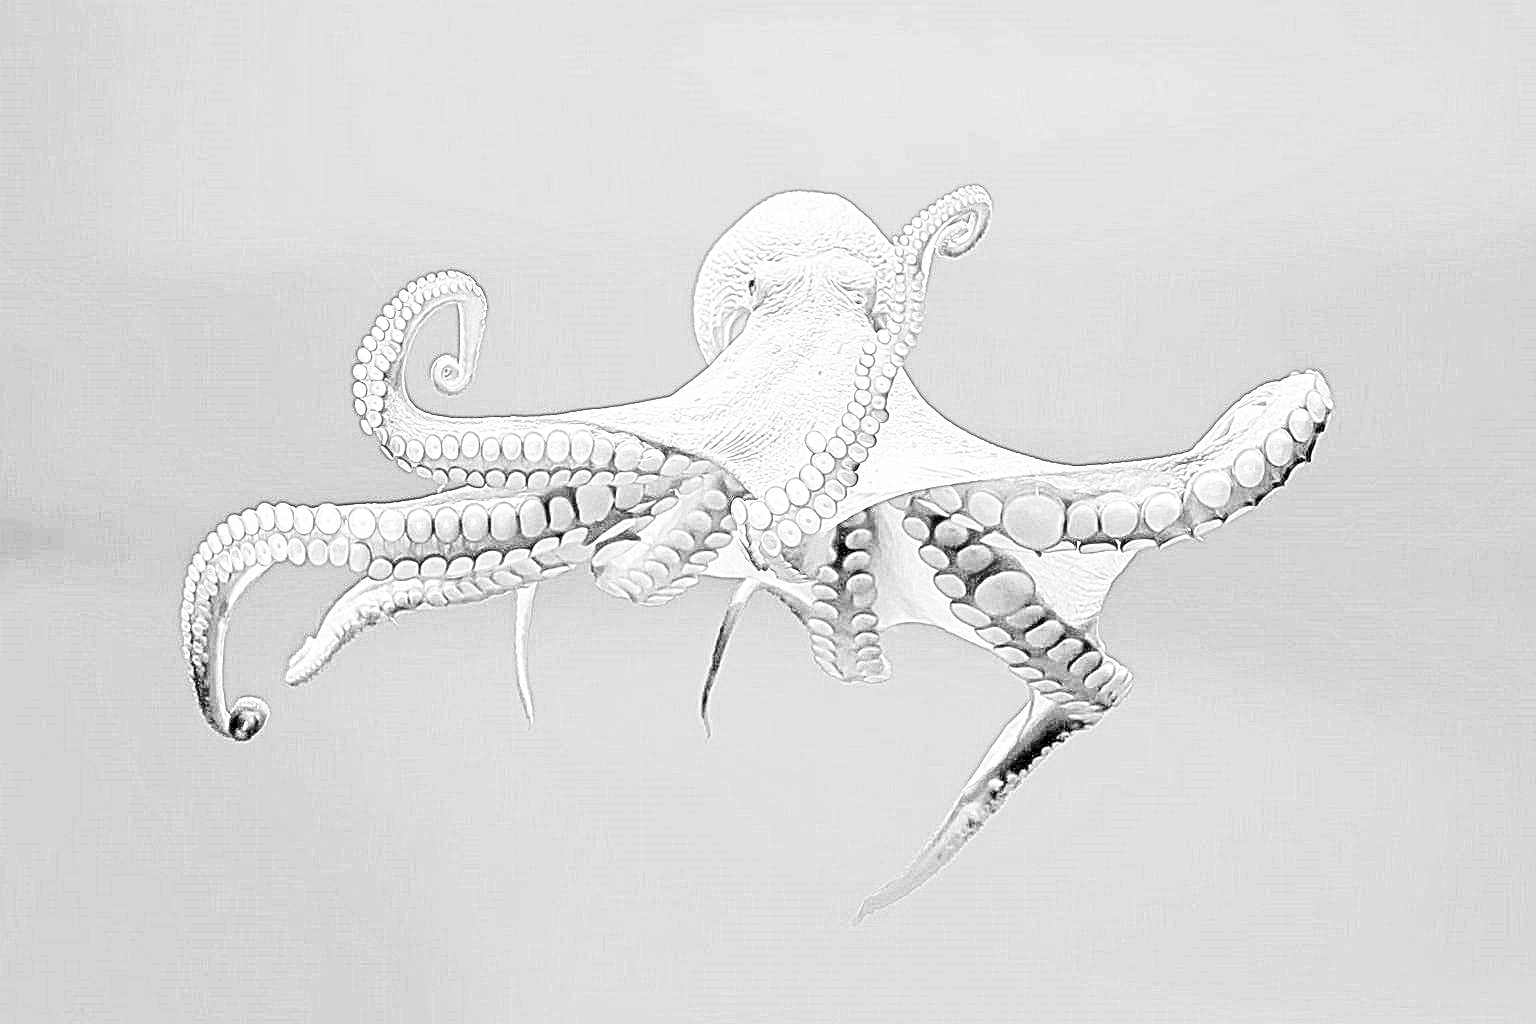 """Octopus image processed to look like a pencil sketch"""